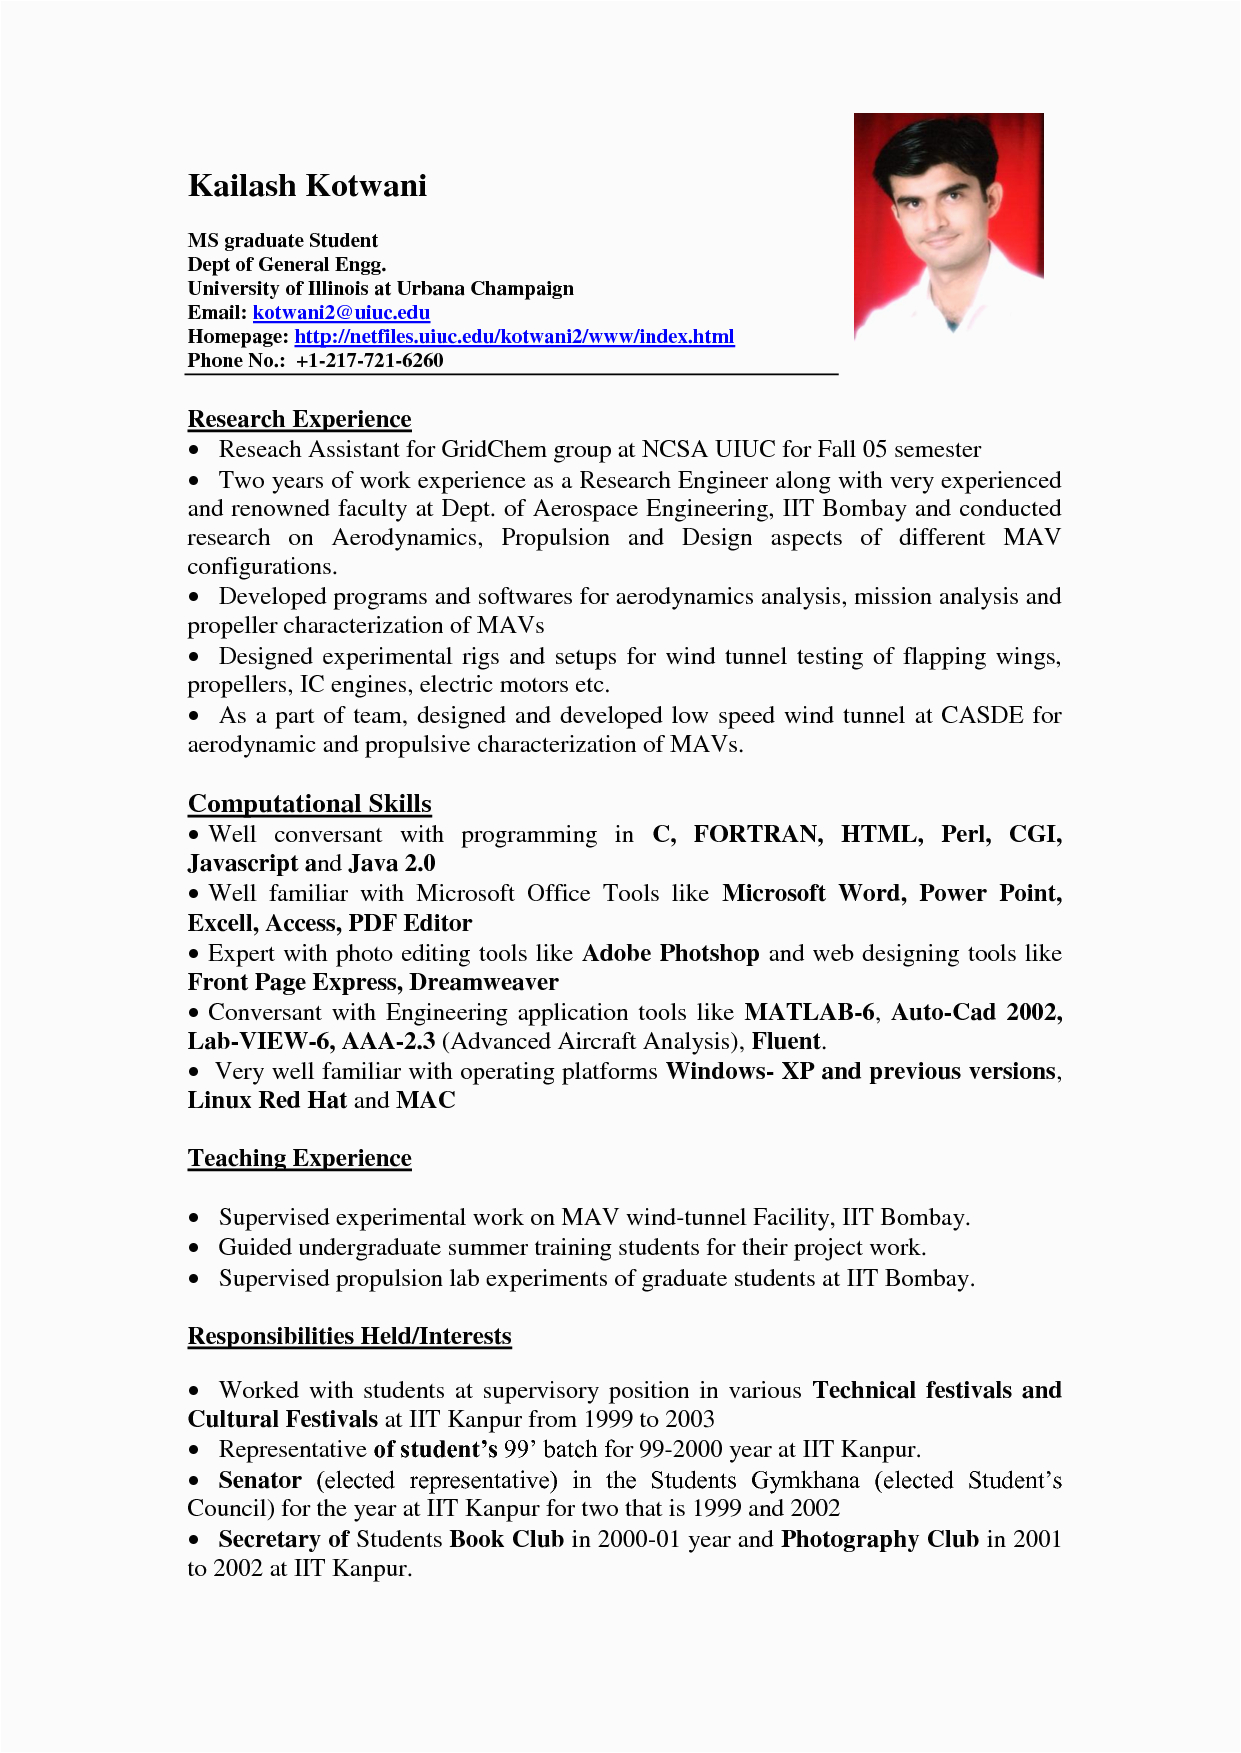 Best Sample Resume format for Experienced Resume with No Experience High School